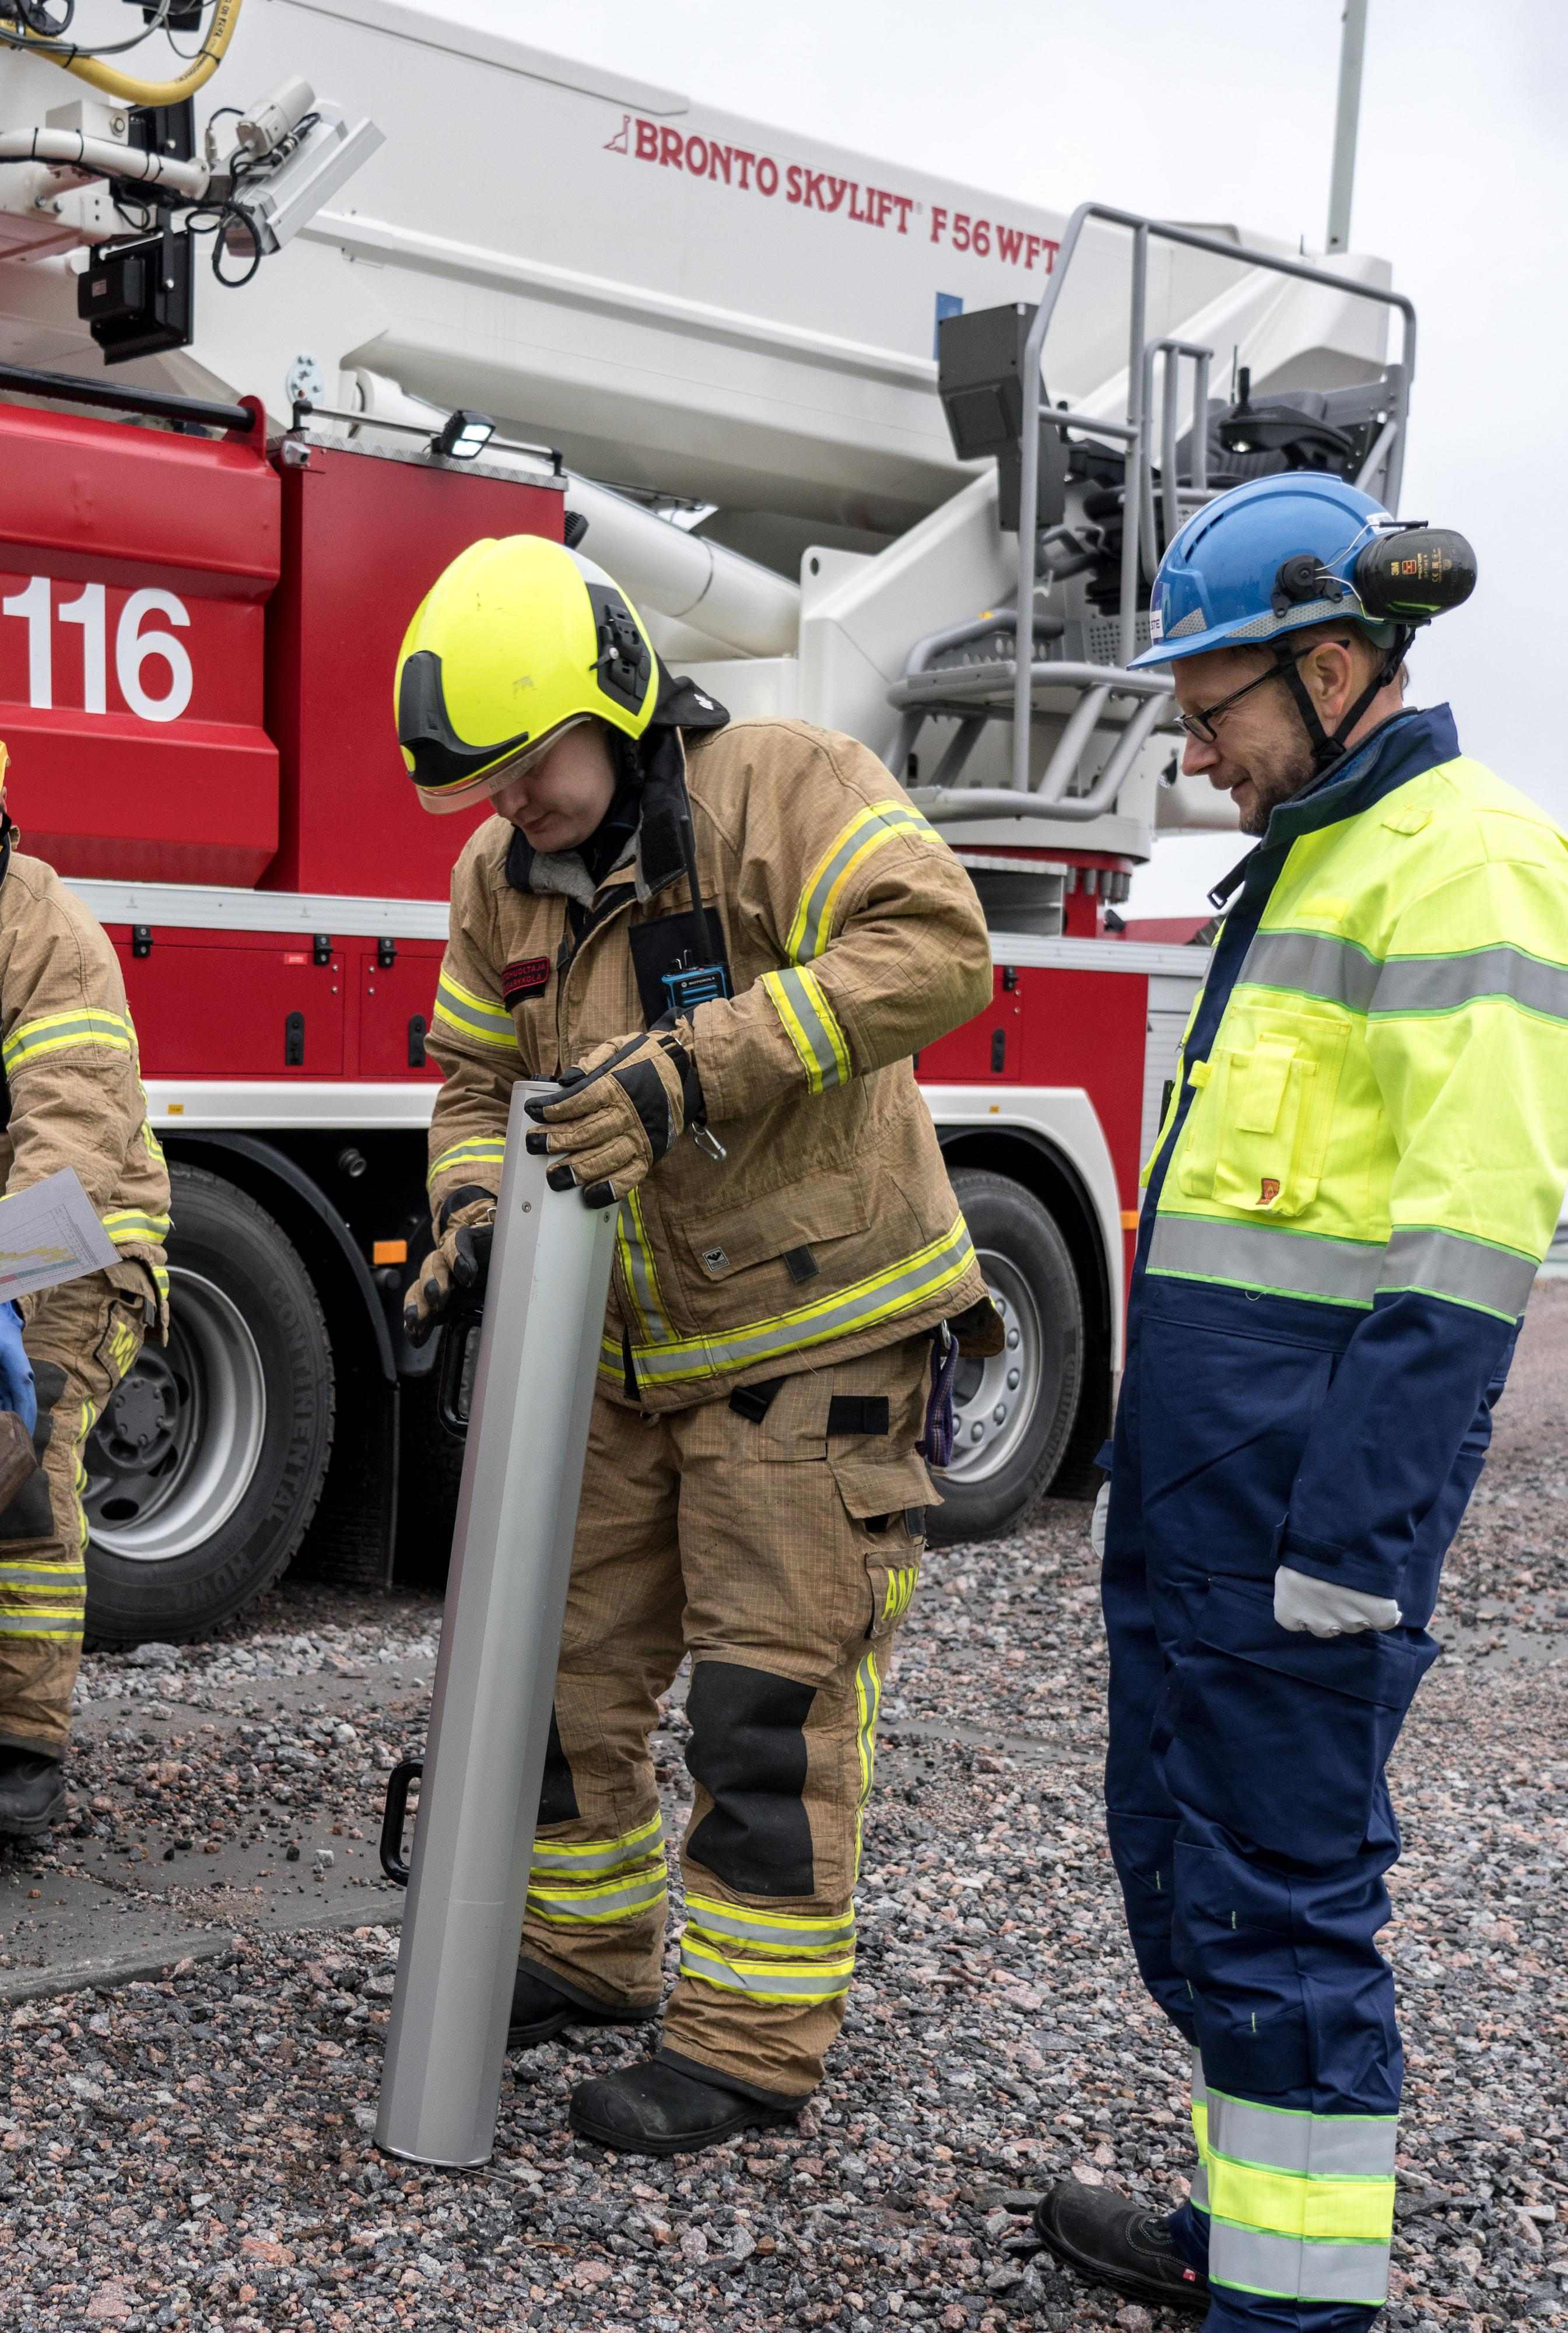 Fire fighter ensuring ground safety with Bronto loadman